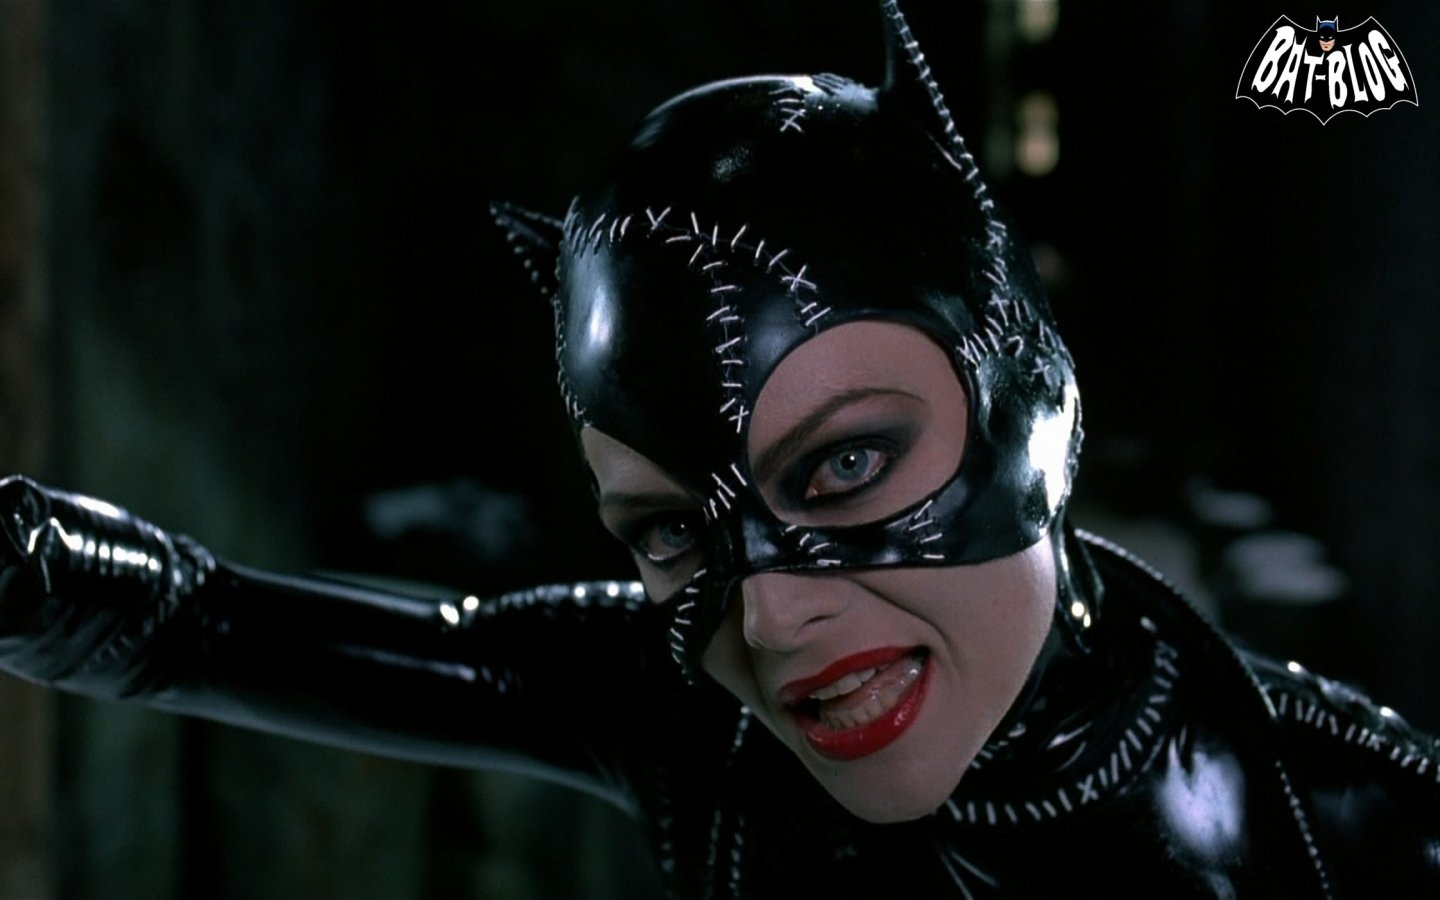 CATWOMAN WALLPAPERS   Michelle Pfeiffer From 1992 BATMAN RETURNS Movie 1440x900